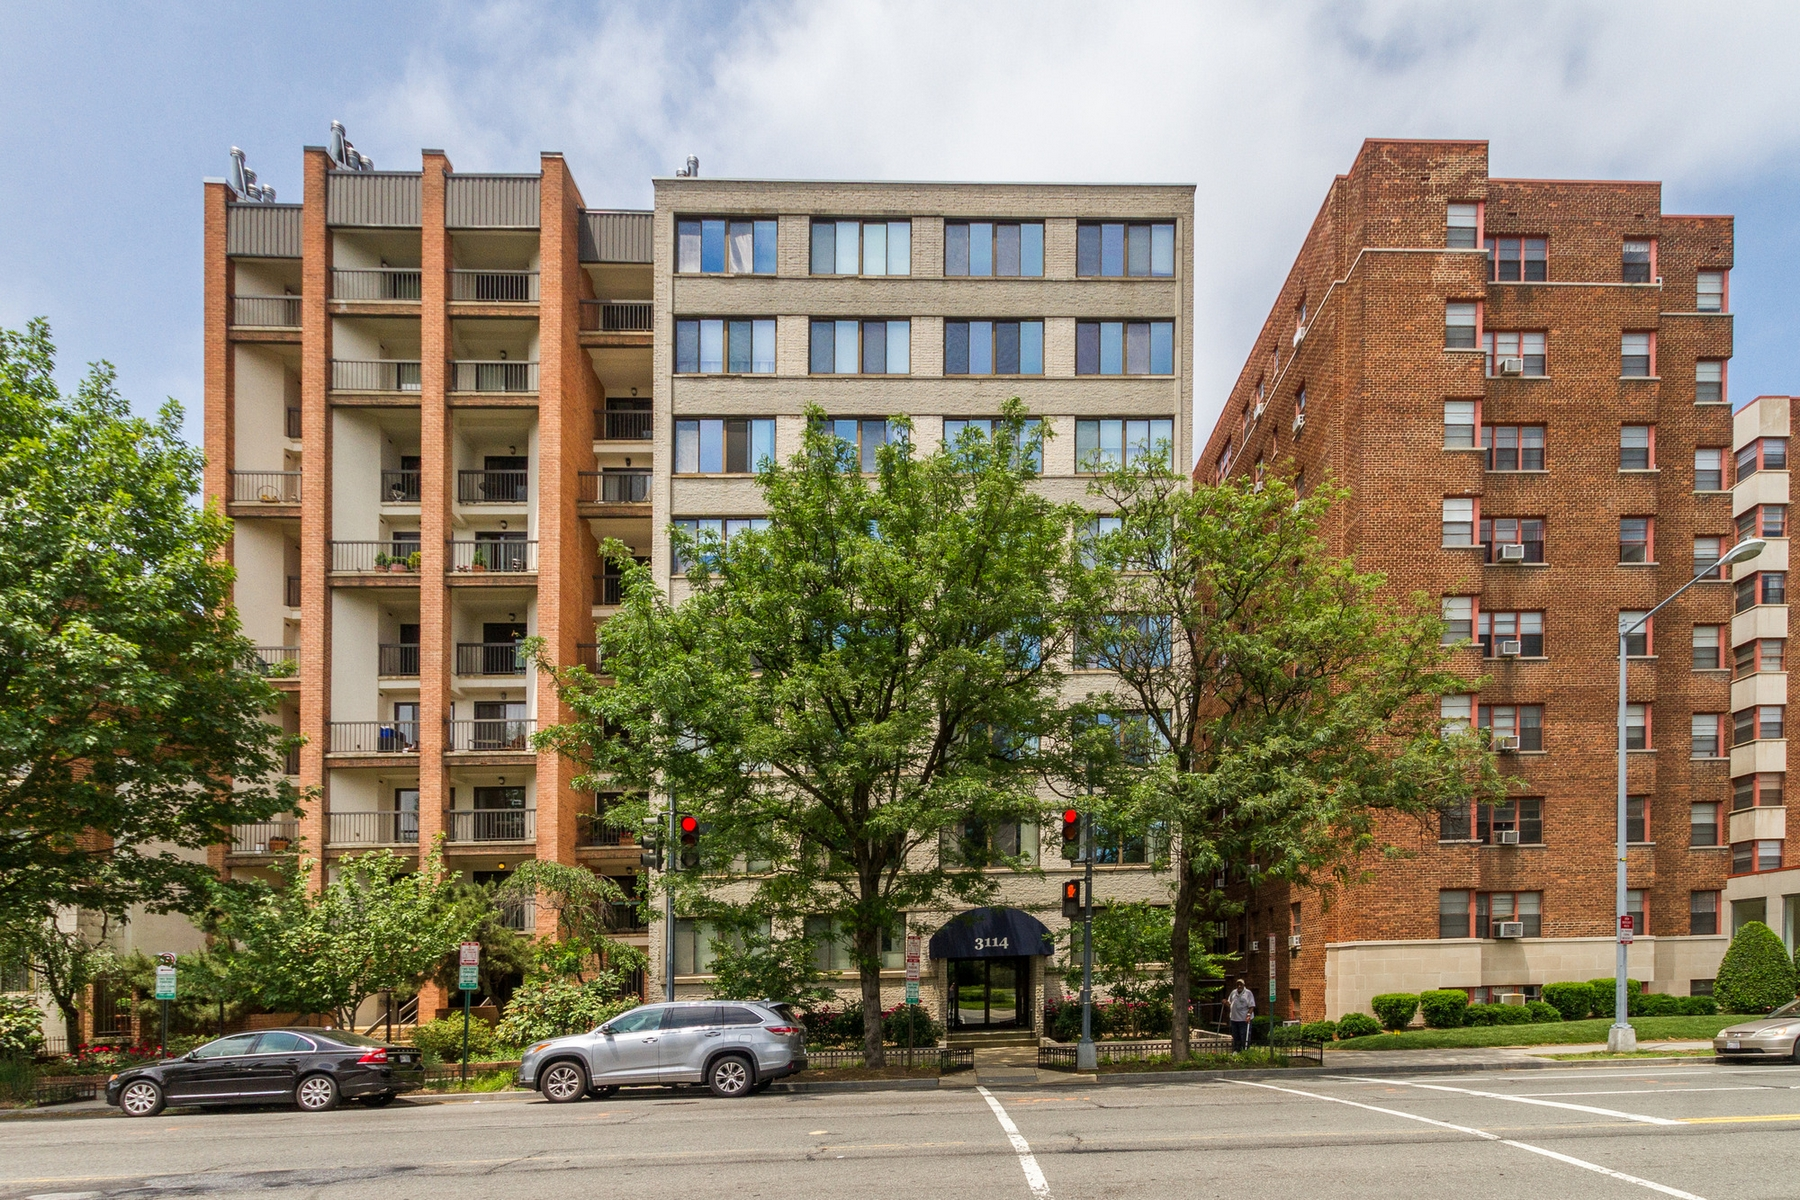 Co-op for Sale at Cleveland Park 3114 Wisconsin Ave NW #401 Washington, District Of Columbia 20016 United States